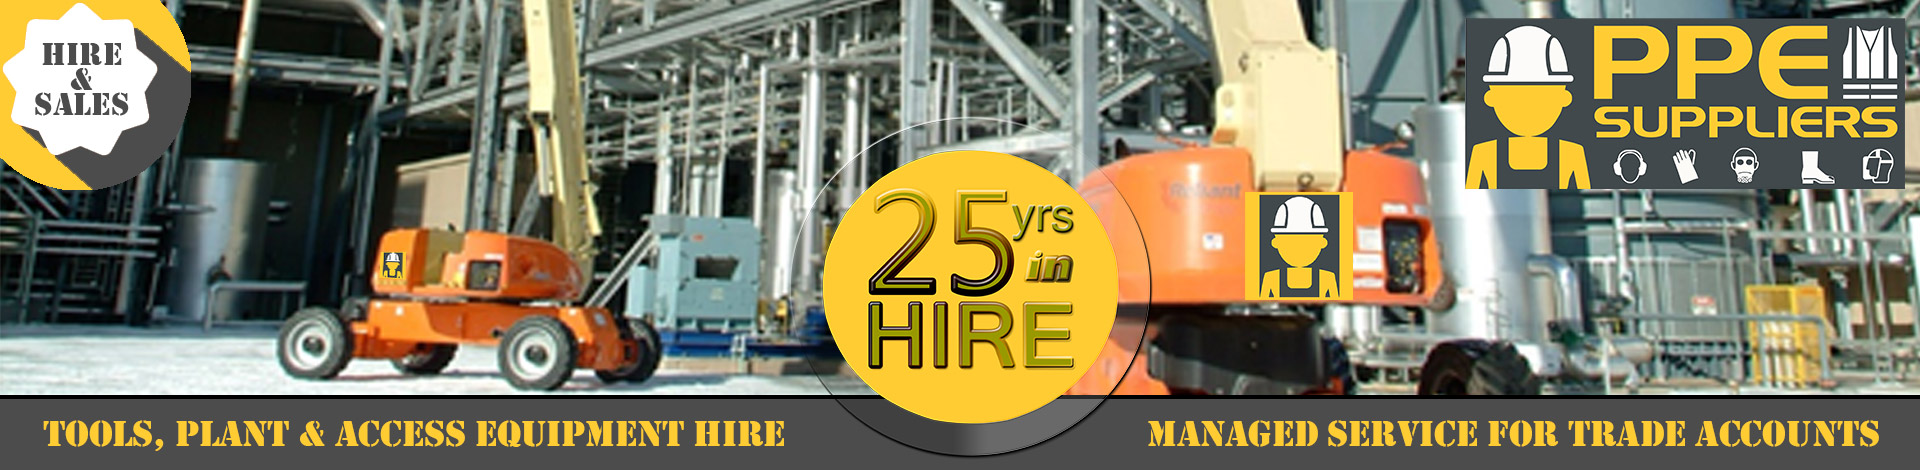 Equipment Hire And Sales In Teesside